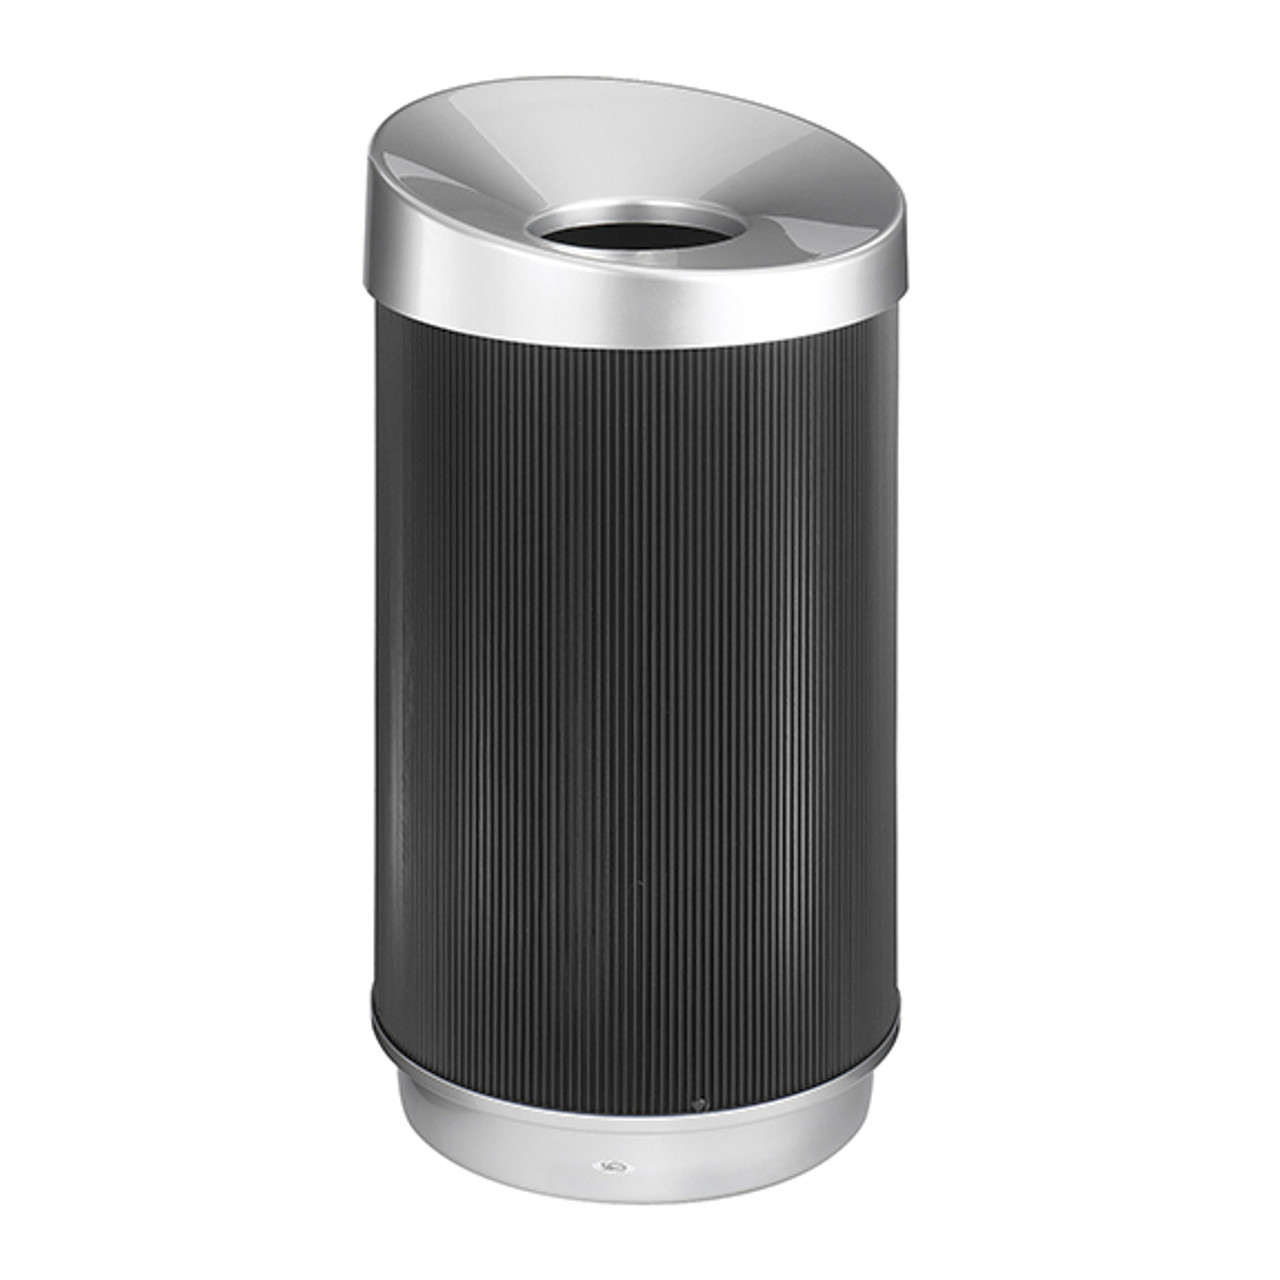 Safco Trash Cans - All Styles